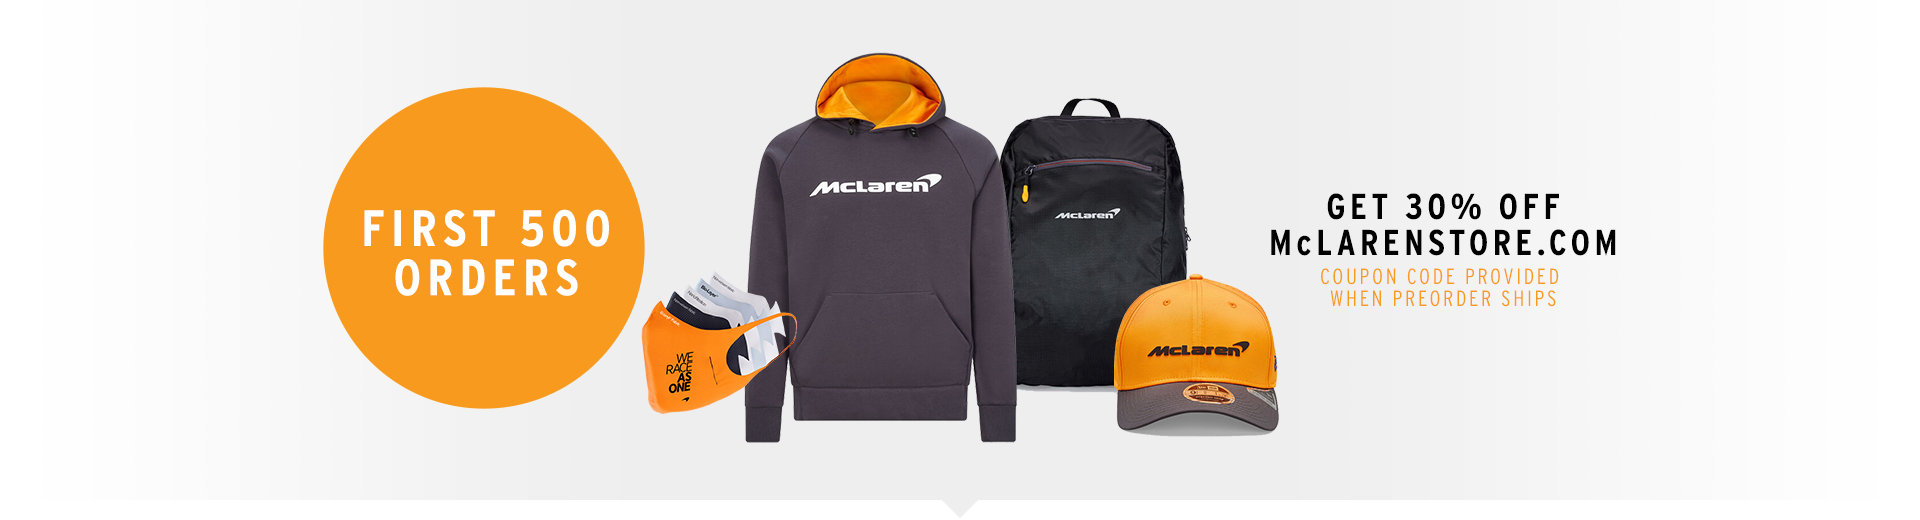 First 500 orders get 30% off at the McLaren Gear Store